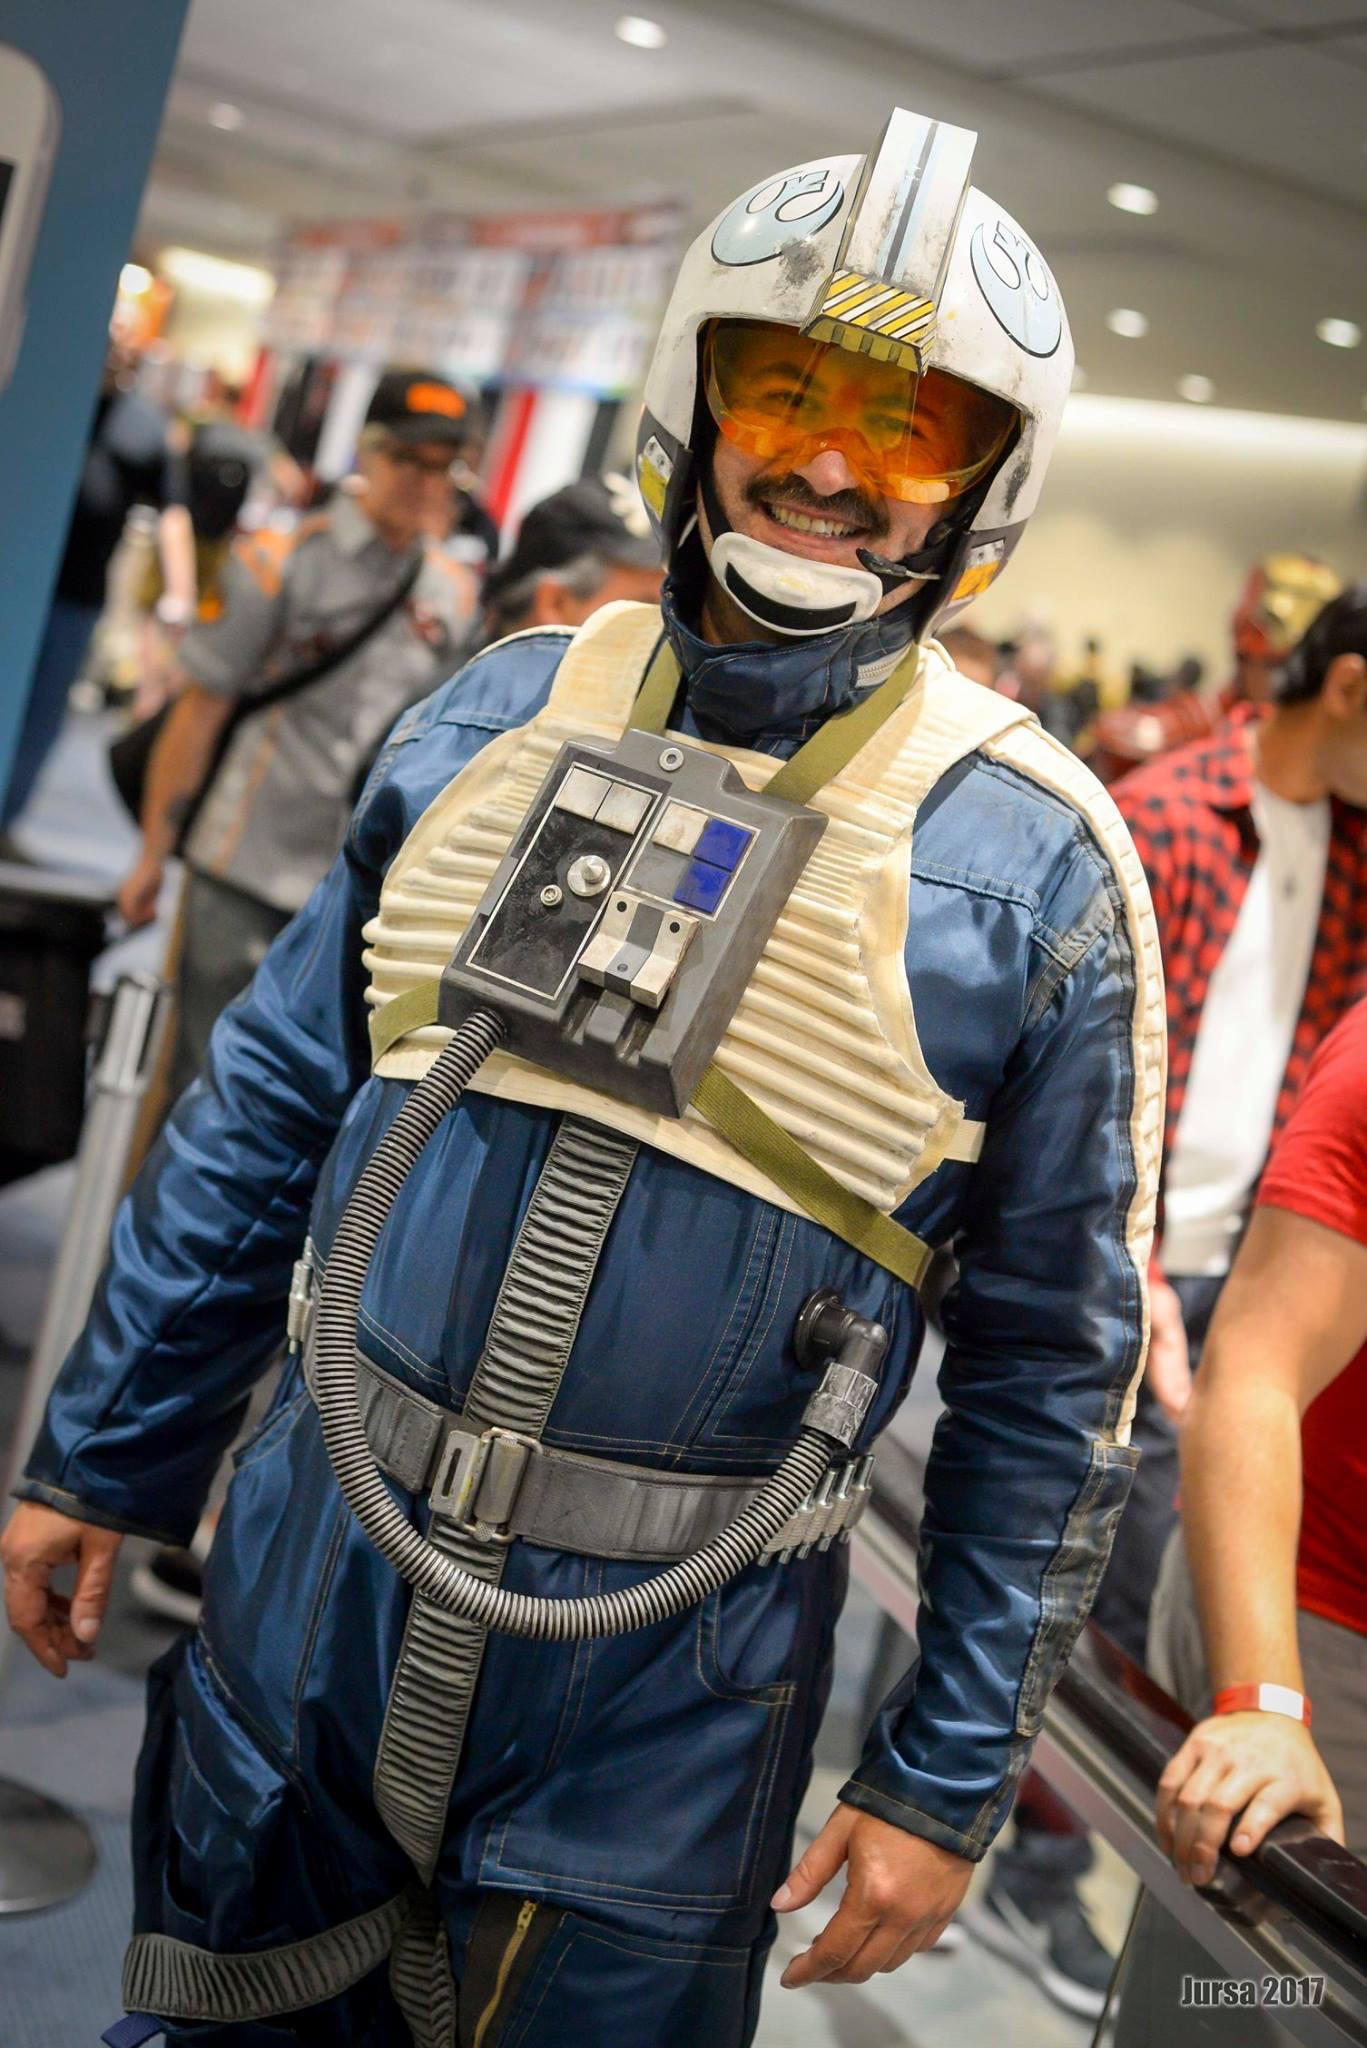 Showoff My Rogue One Blue Leader General Merrick Costume Rpf Costume And Prop Maker Community